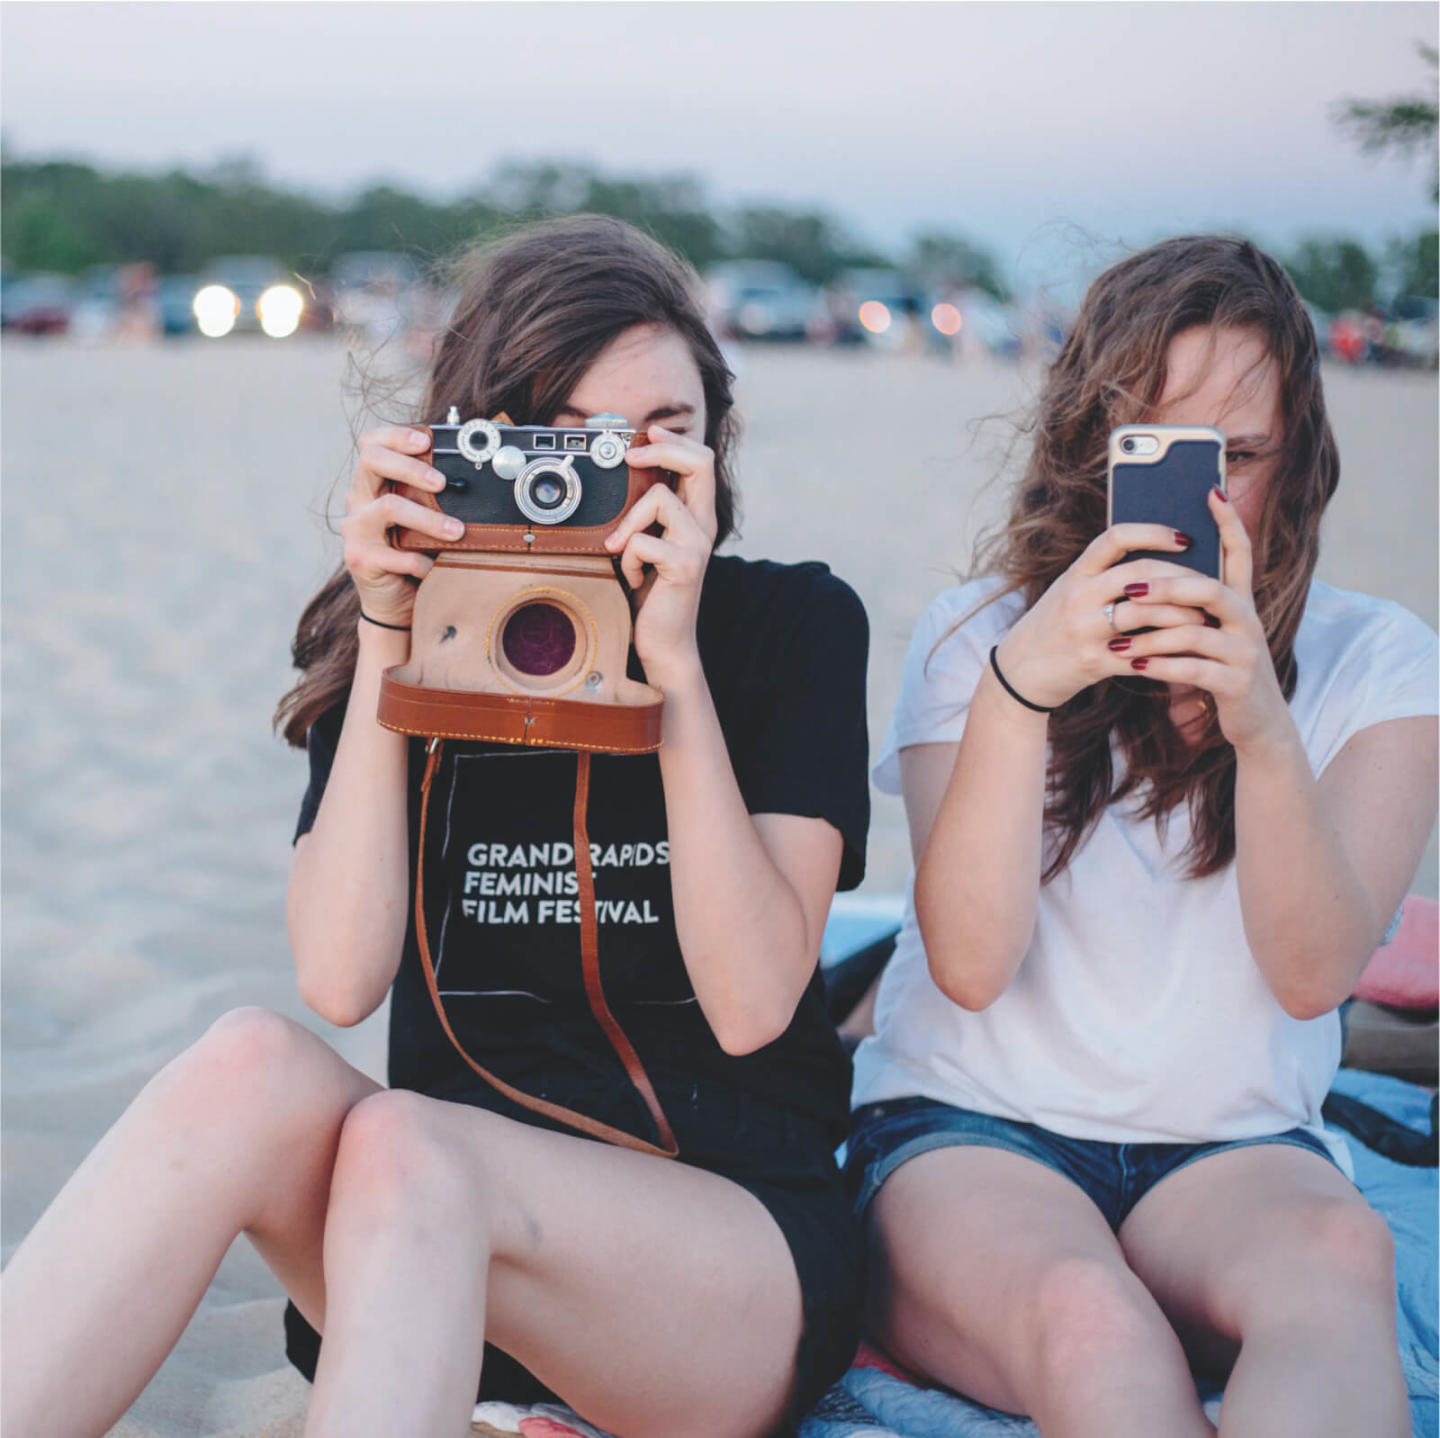 An image of two girls with camera and phone